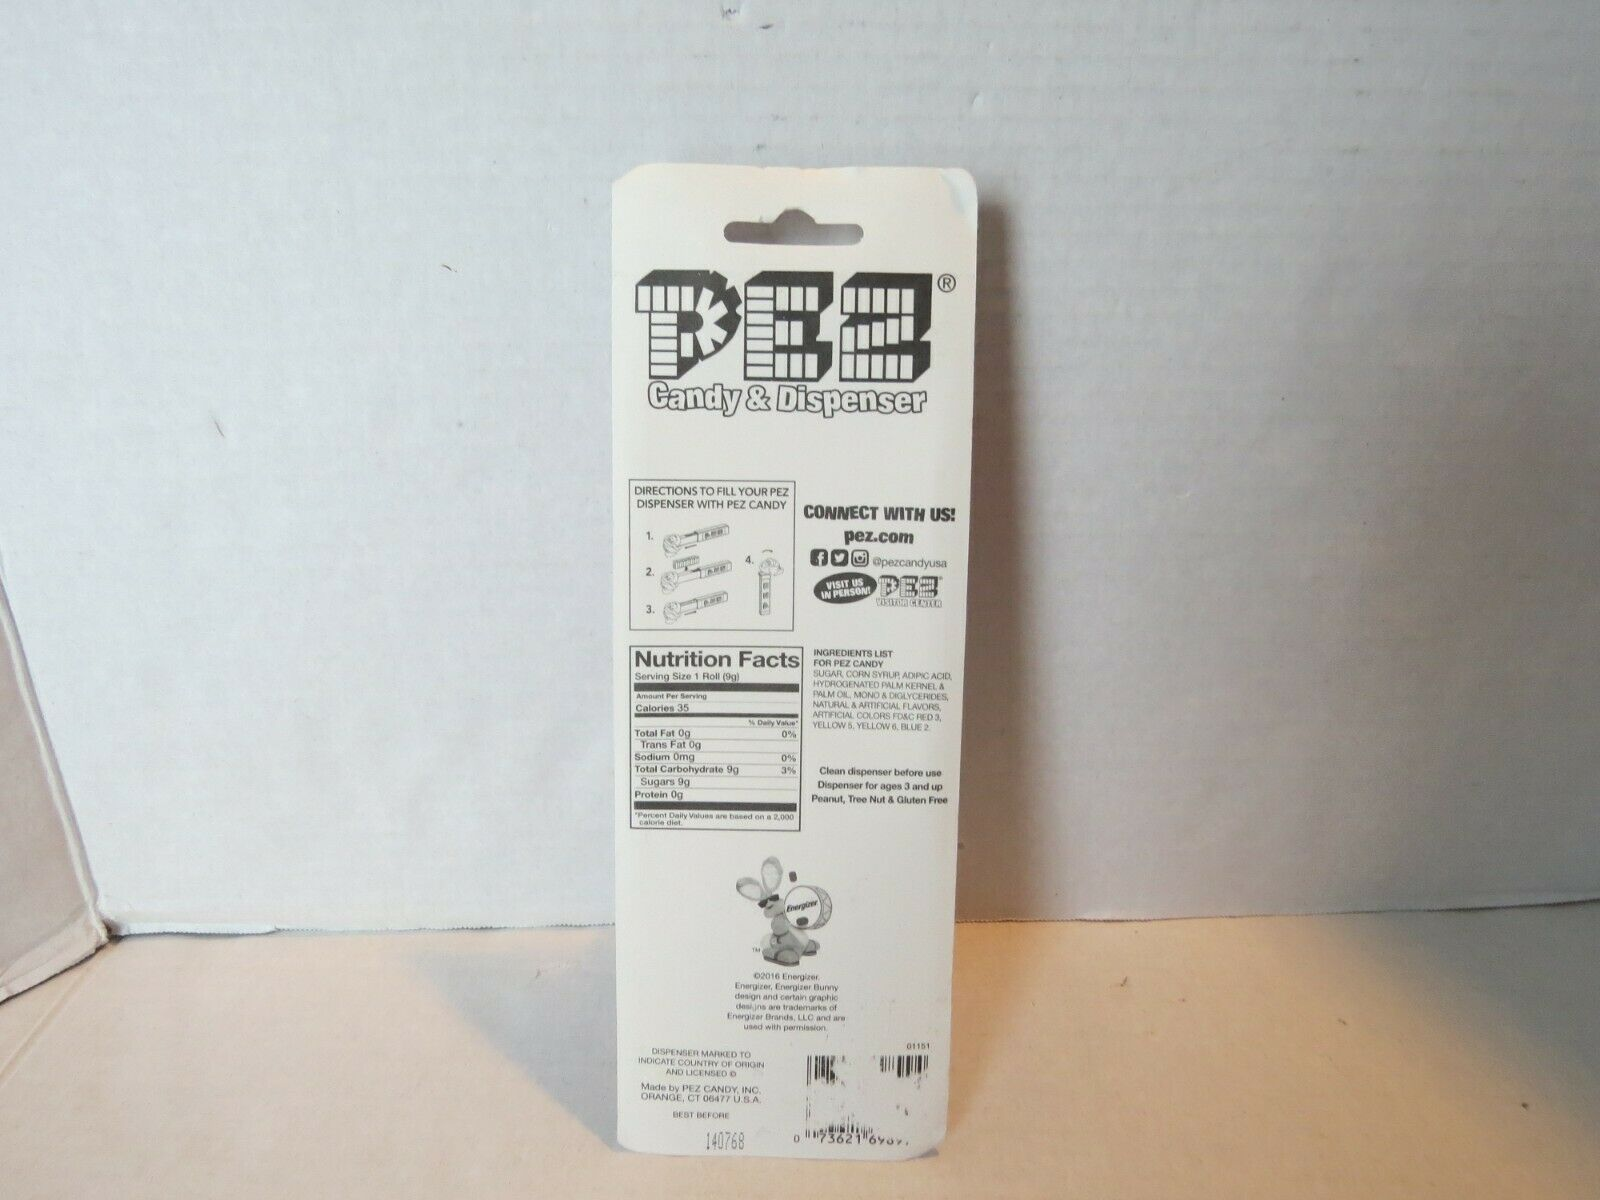 ☆NEW COLLECTIBLE ENERGIZER BUNNY PEZ candy Dispenser Limited Kroger Store Promo☆